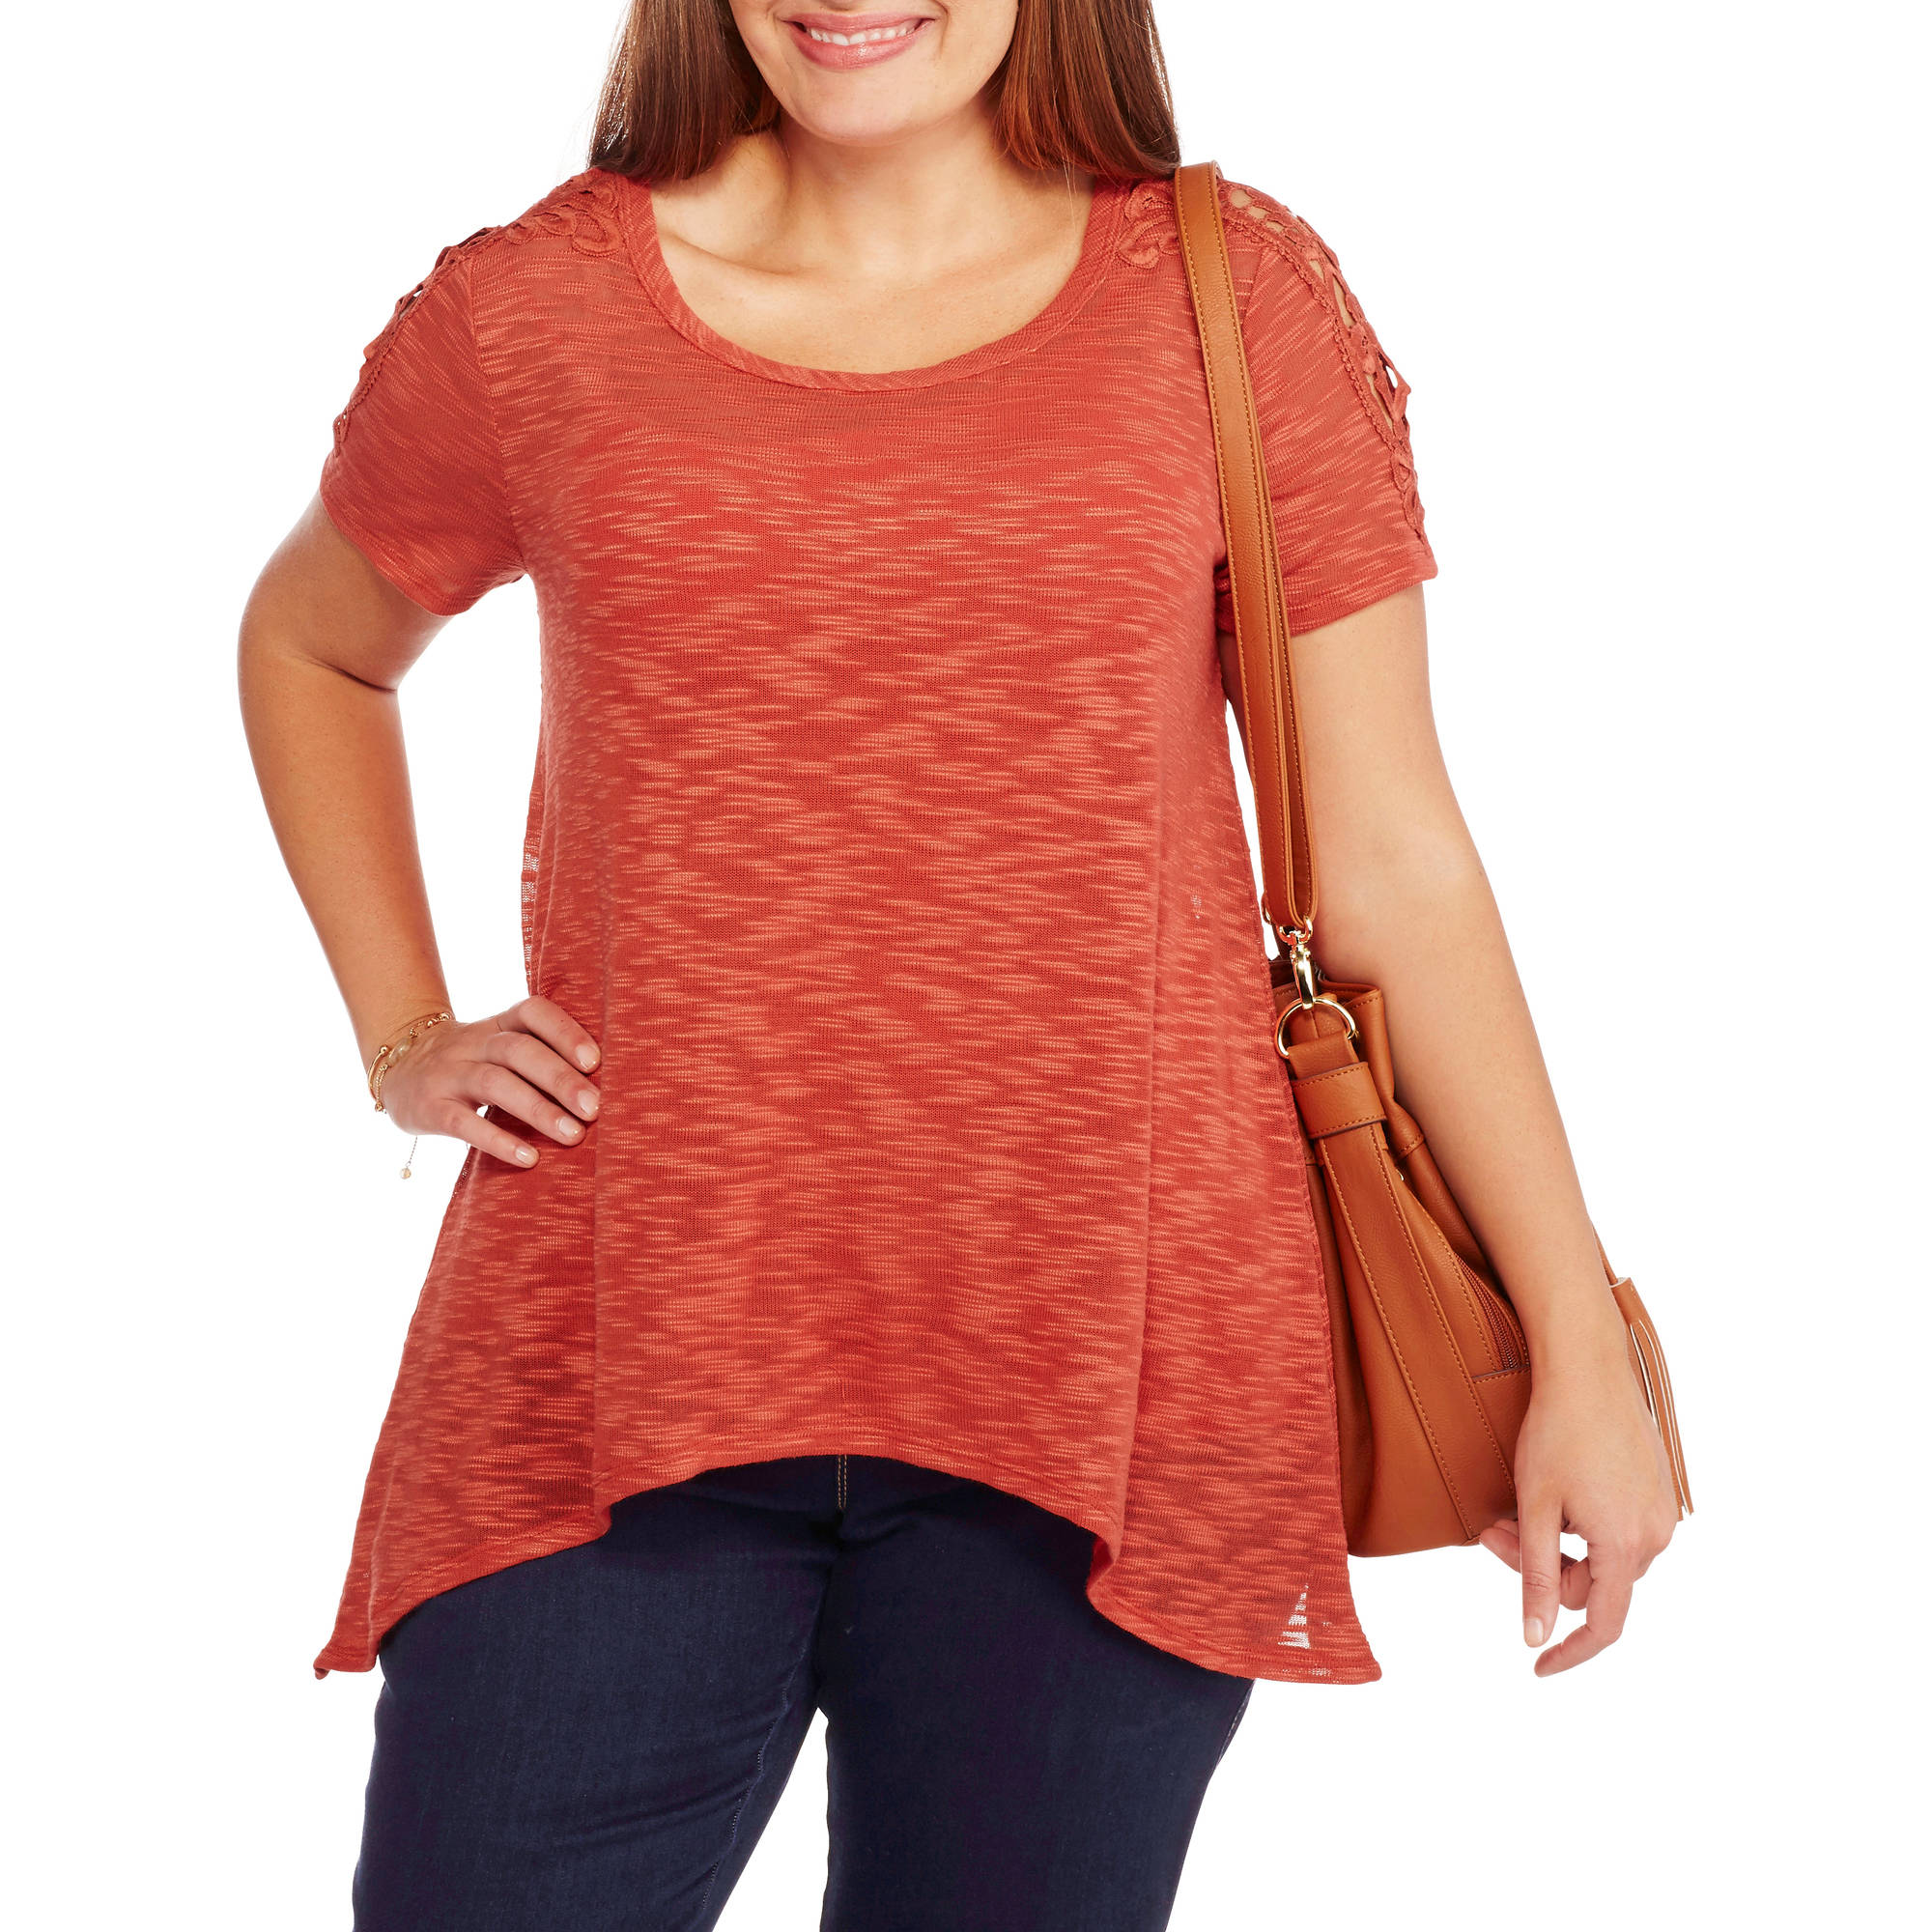 Absolutely Famous Women's Plus Short Sleeve Knit Top with Sharkbite Hem and Medallion Lace Trim